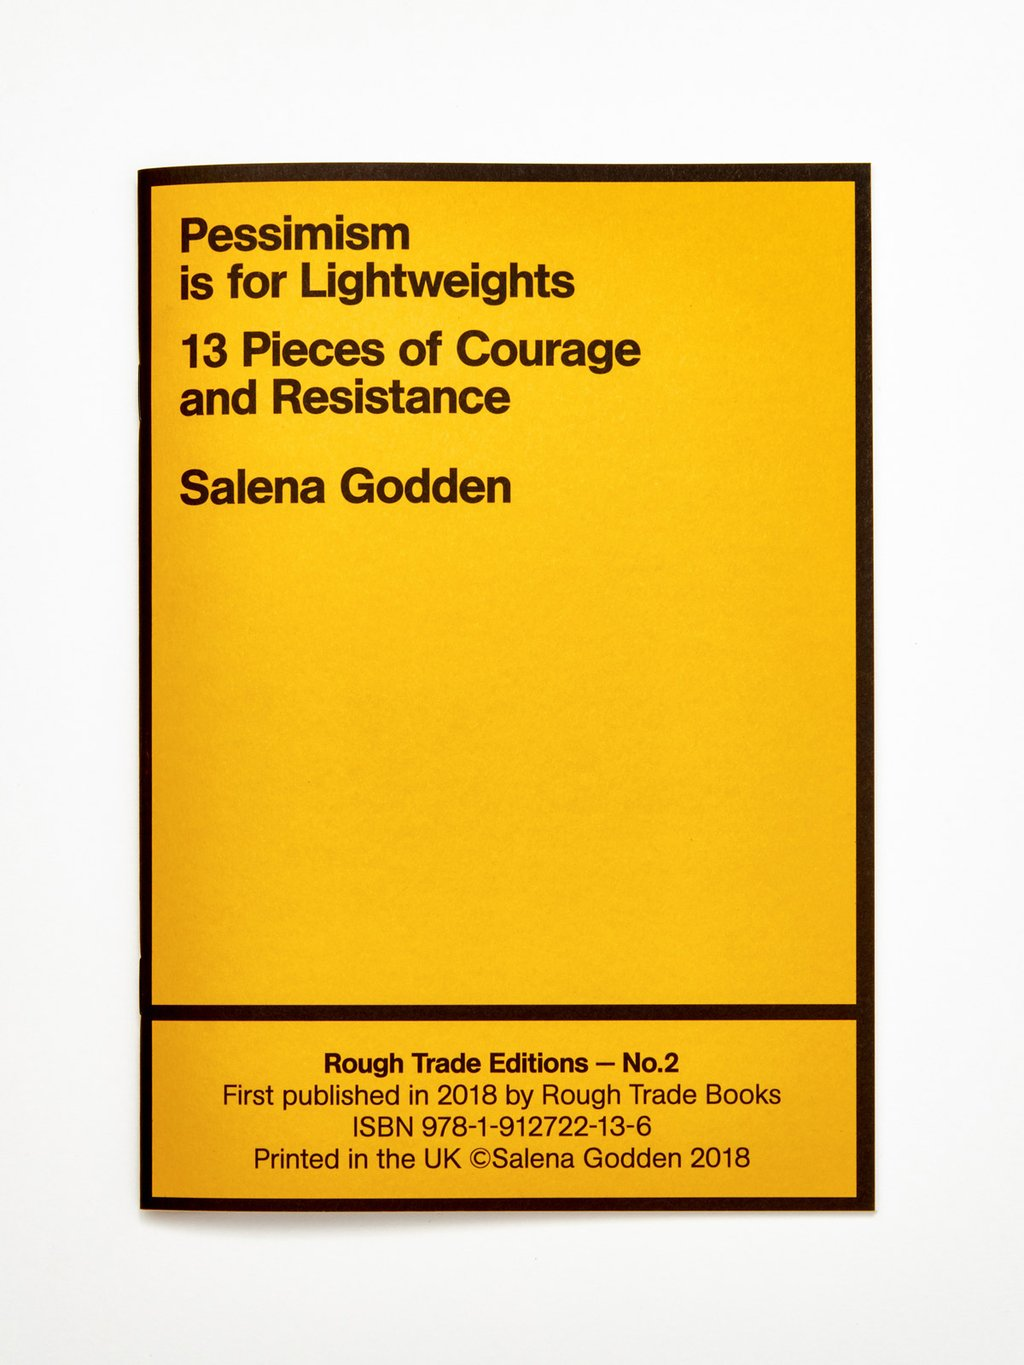 Pessimism is for Lightweights